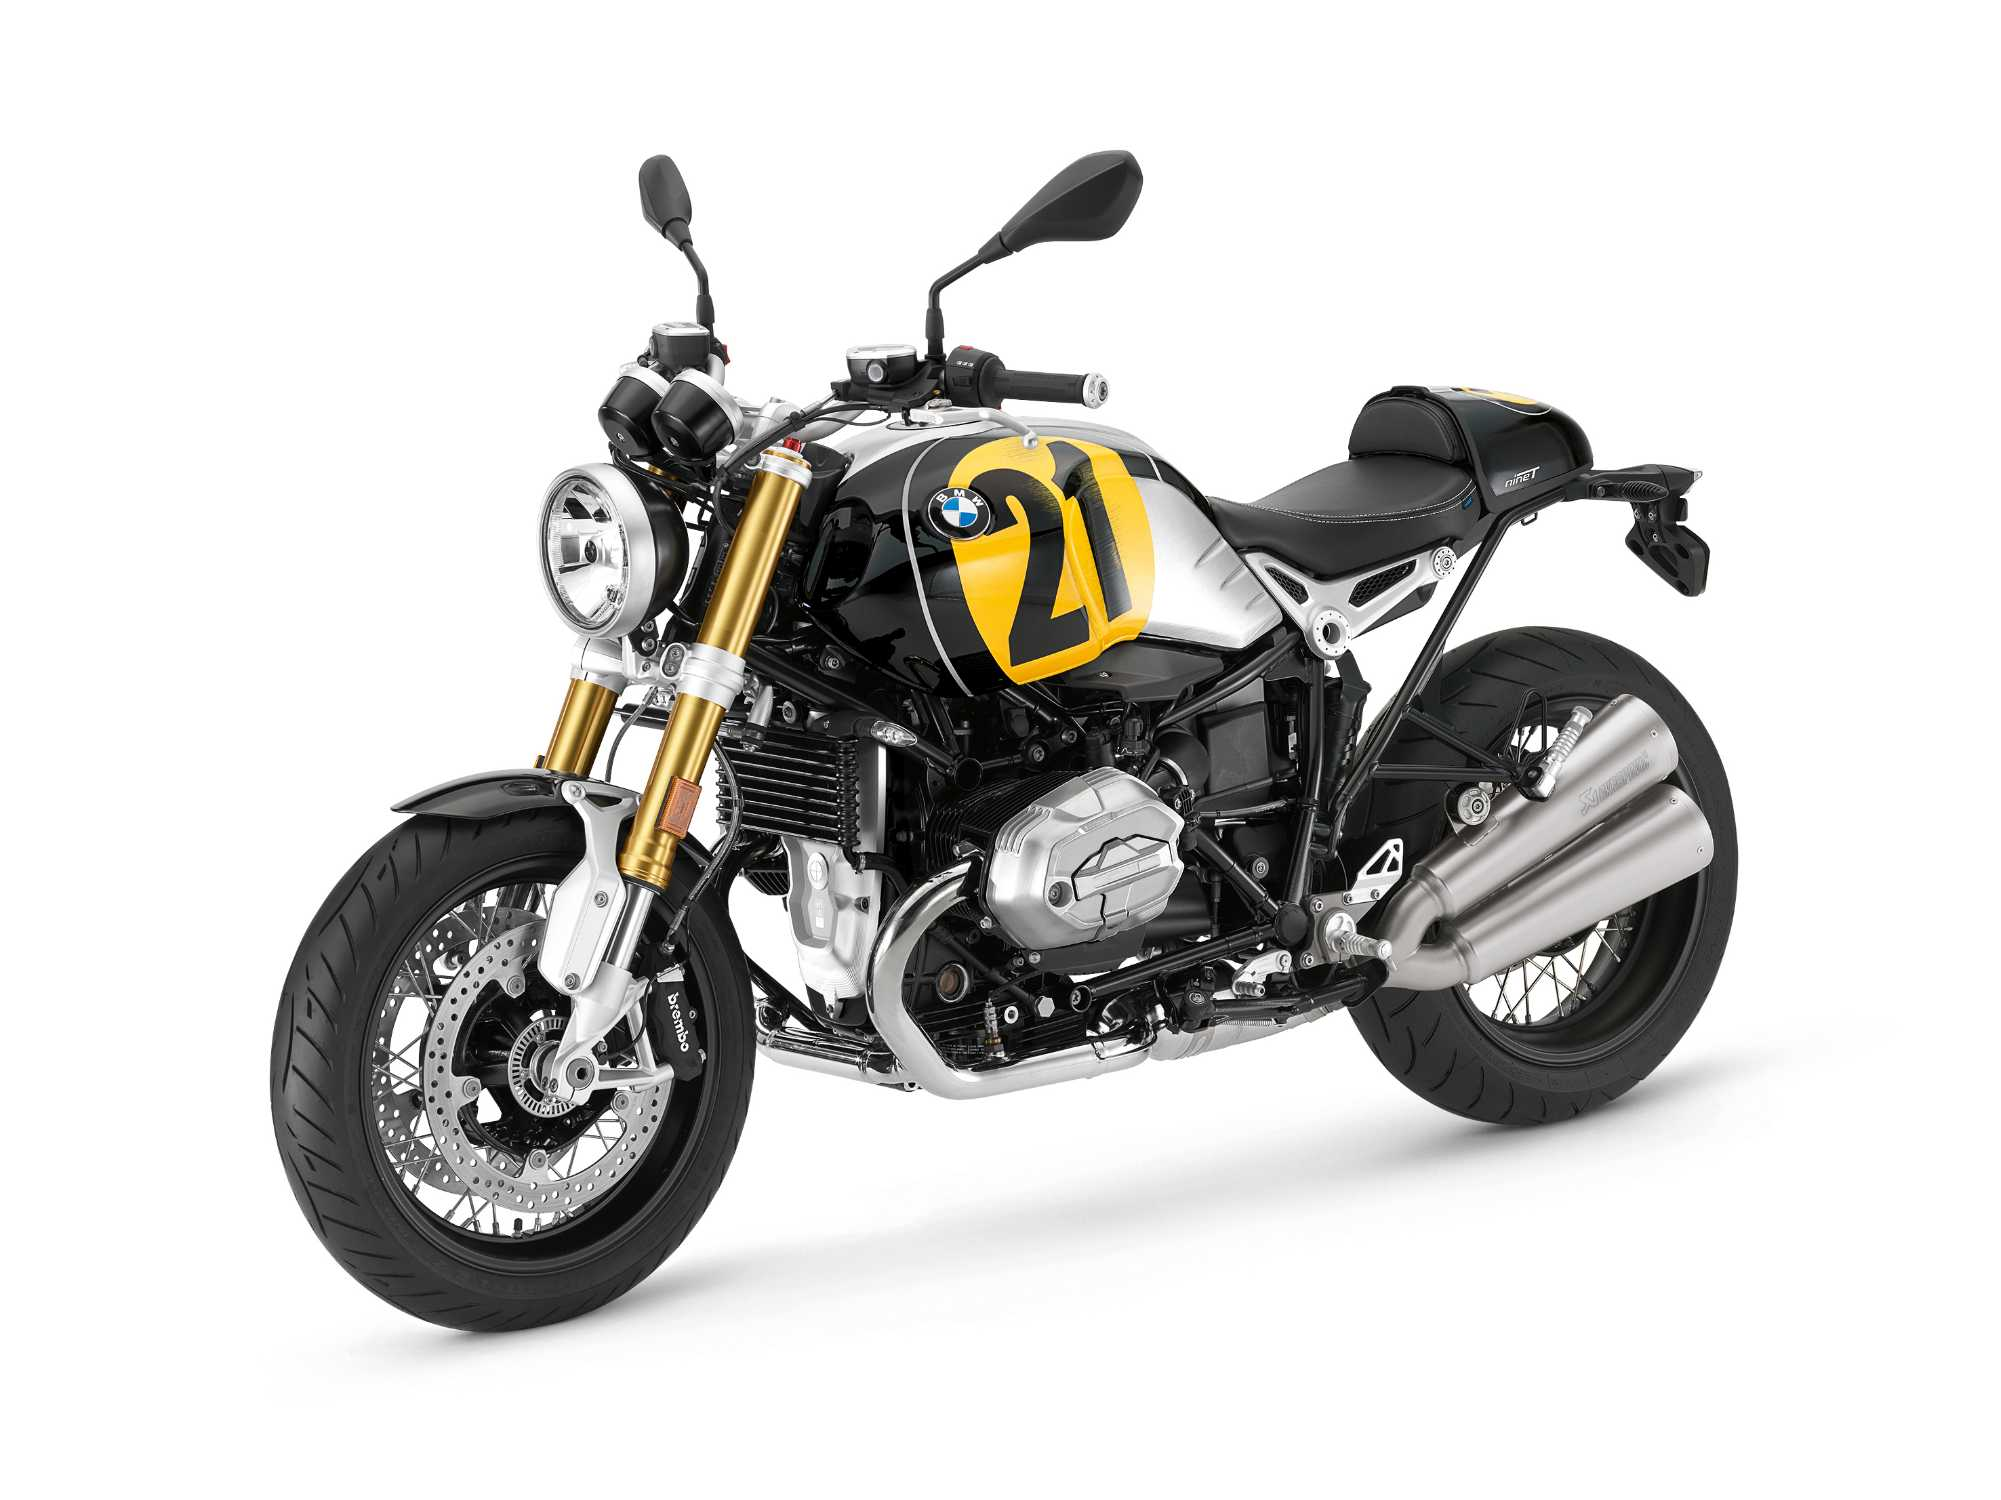 Bmw r ninet in special paint finish blackstorm metallic Special paint finishes